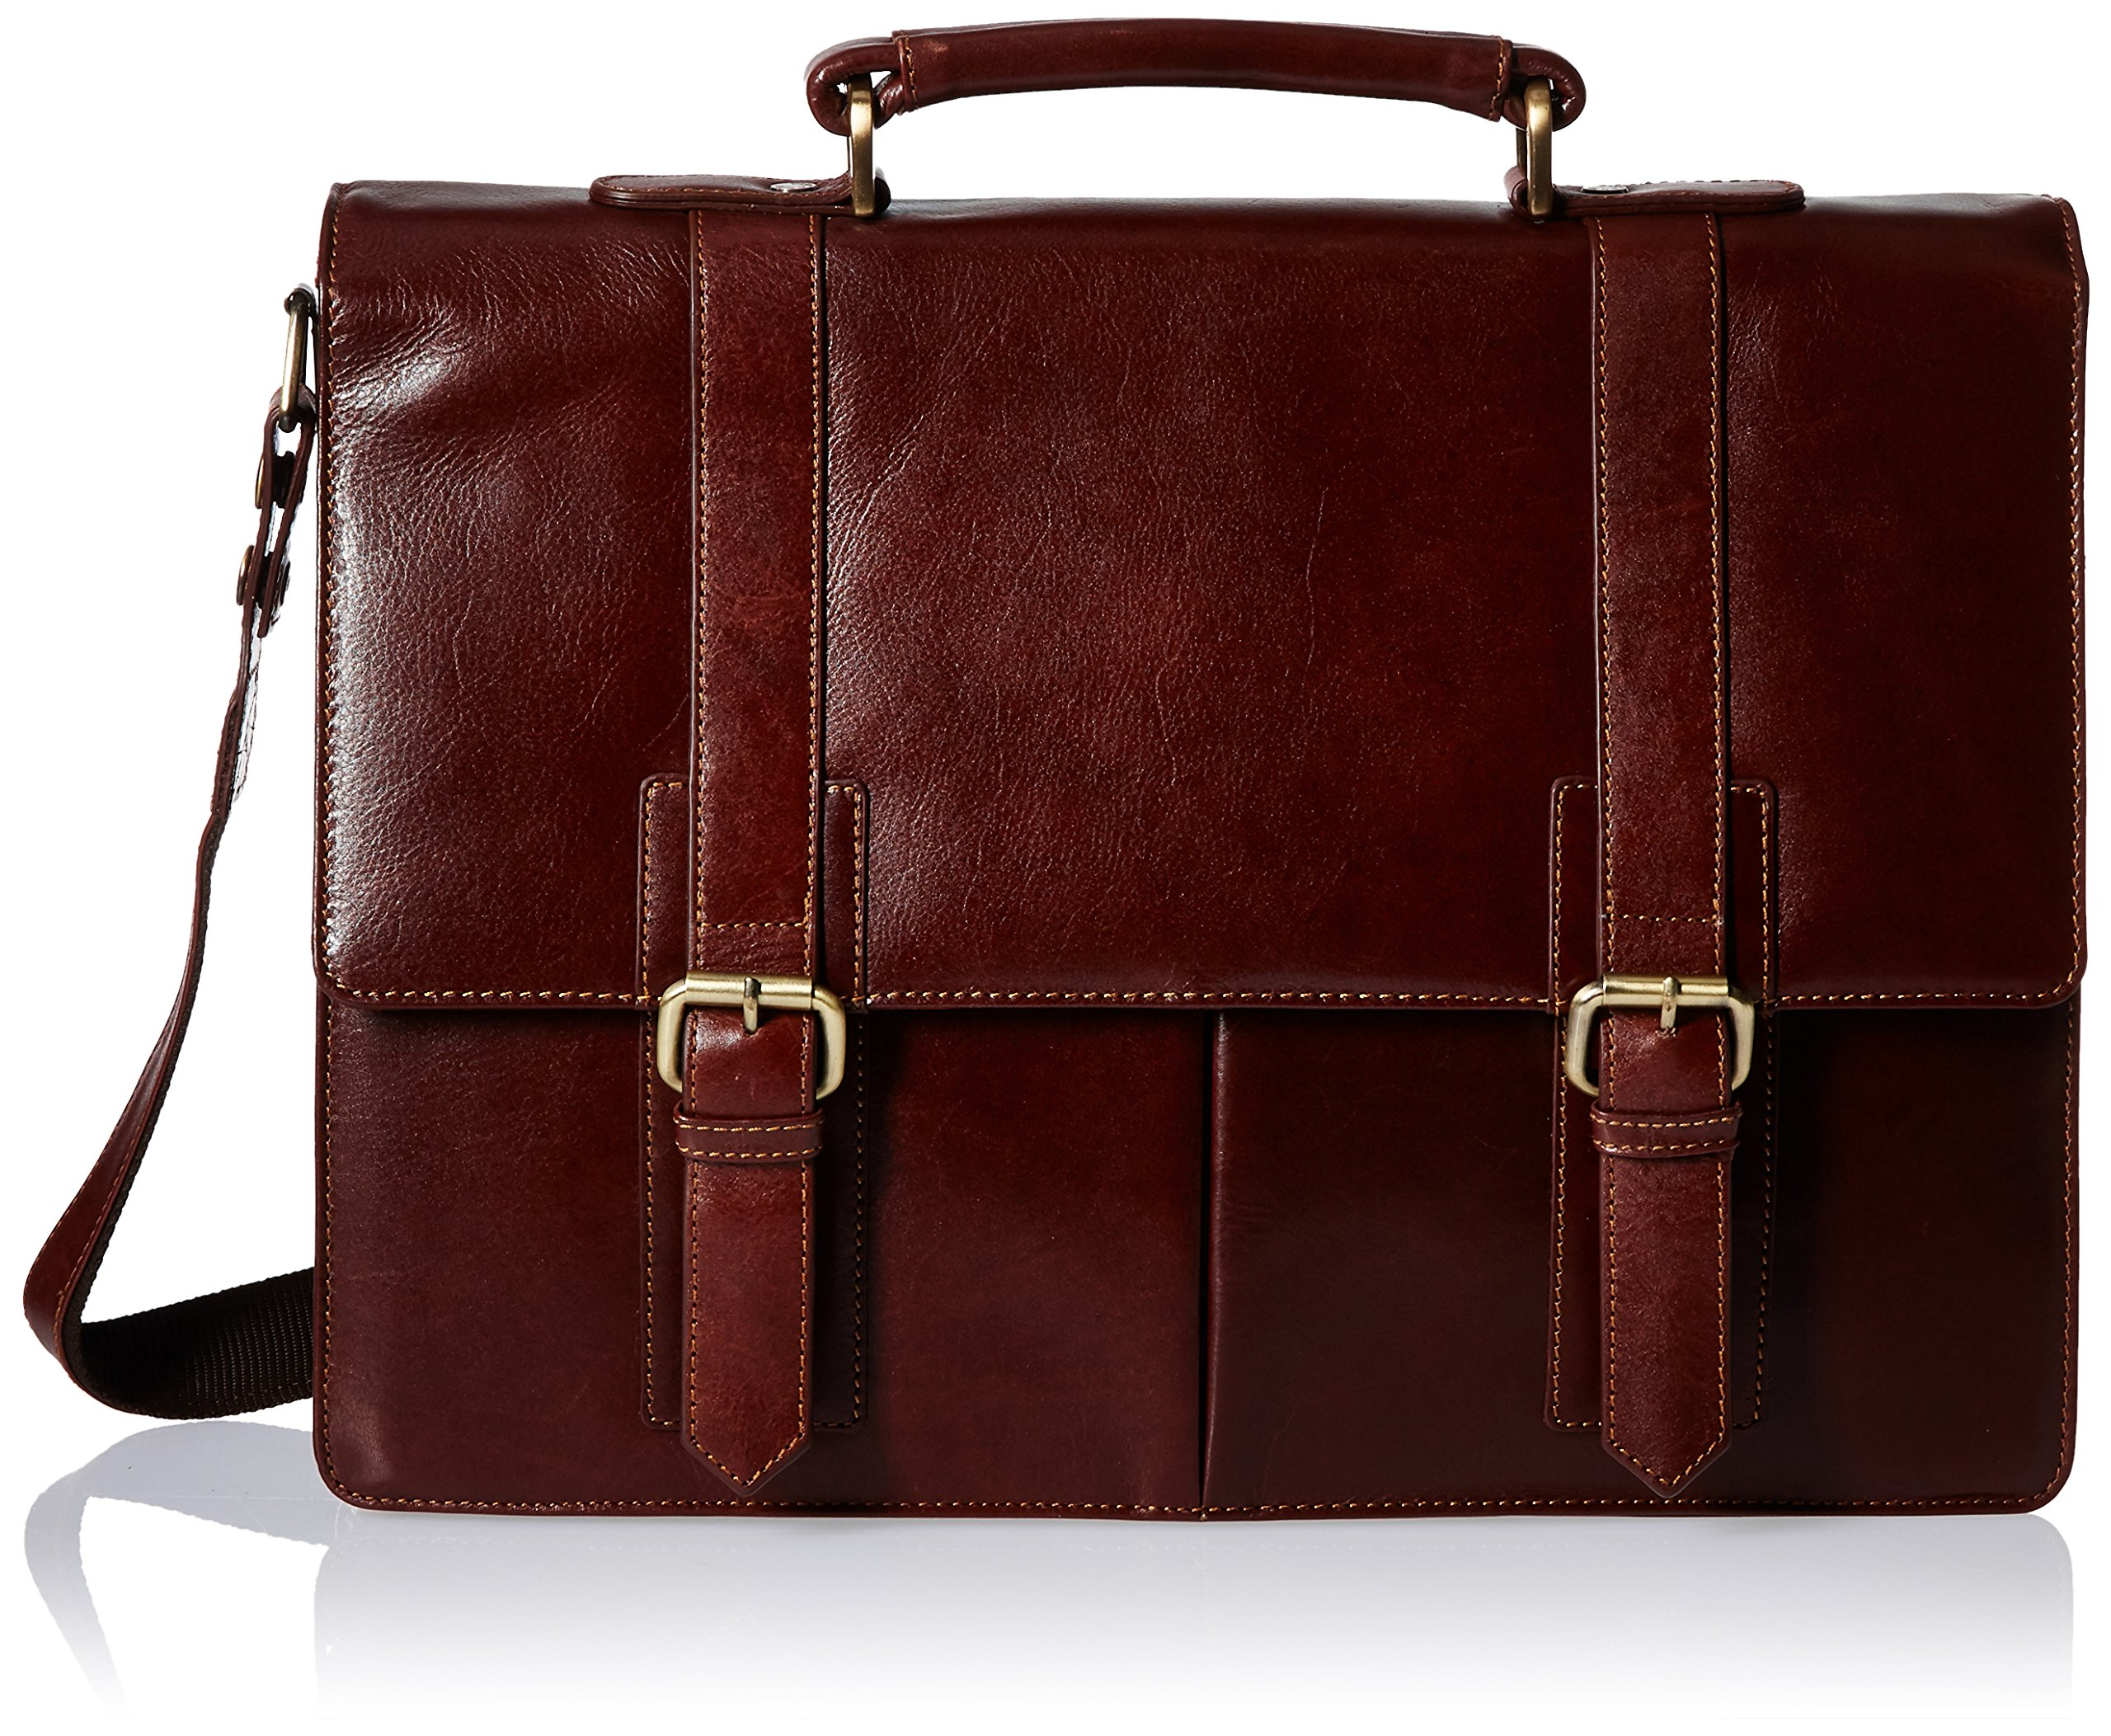 Visconti Leather Vintage Business Briefcase Messenger Bag with Strap, Brown, One Size by Visconti